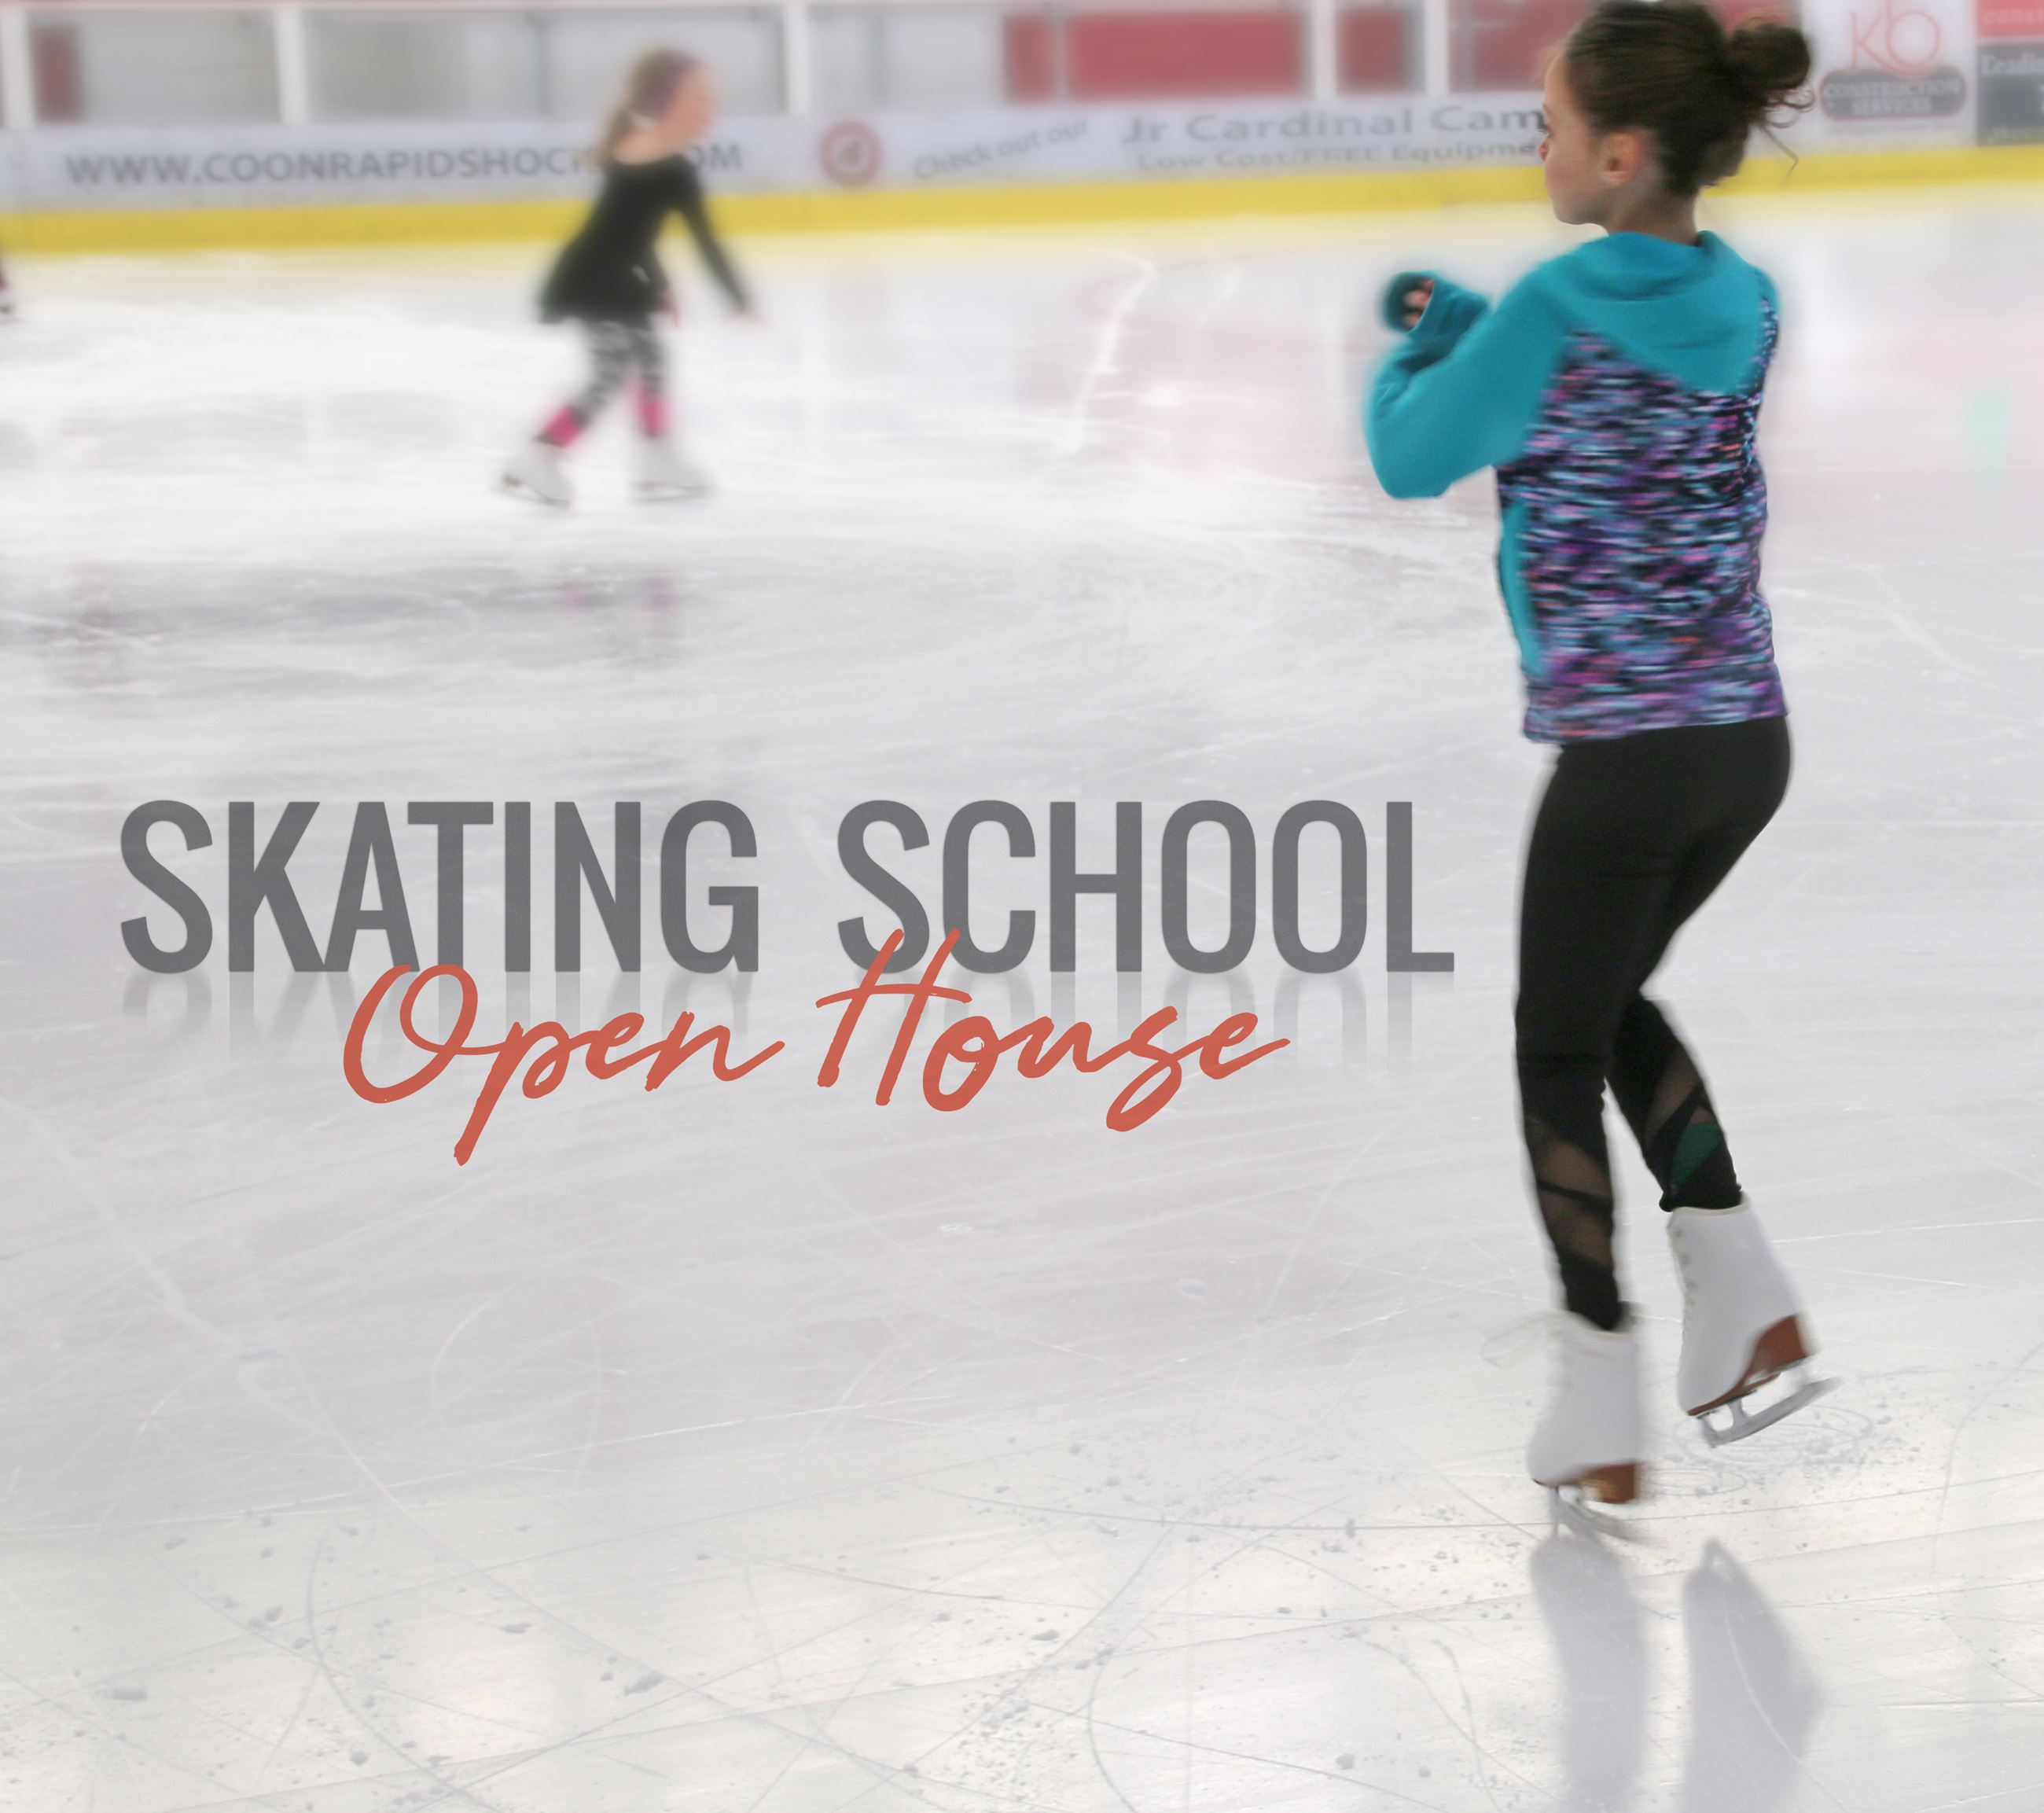 Figure skaters practicing ice skating